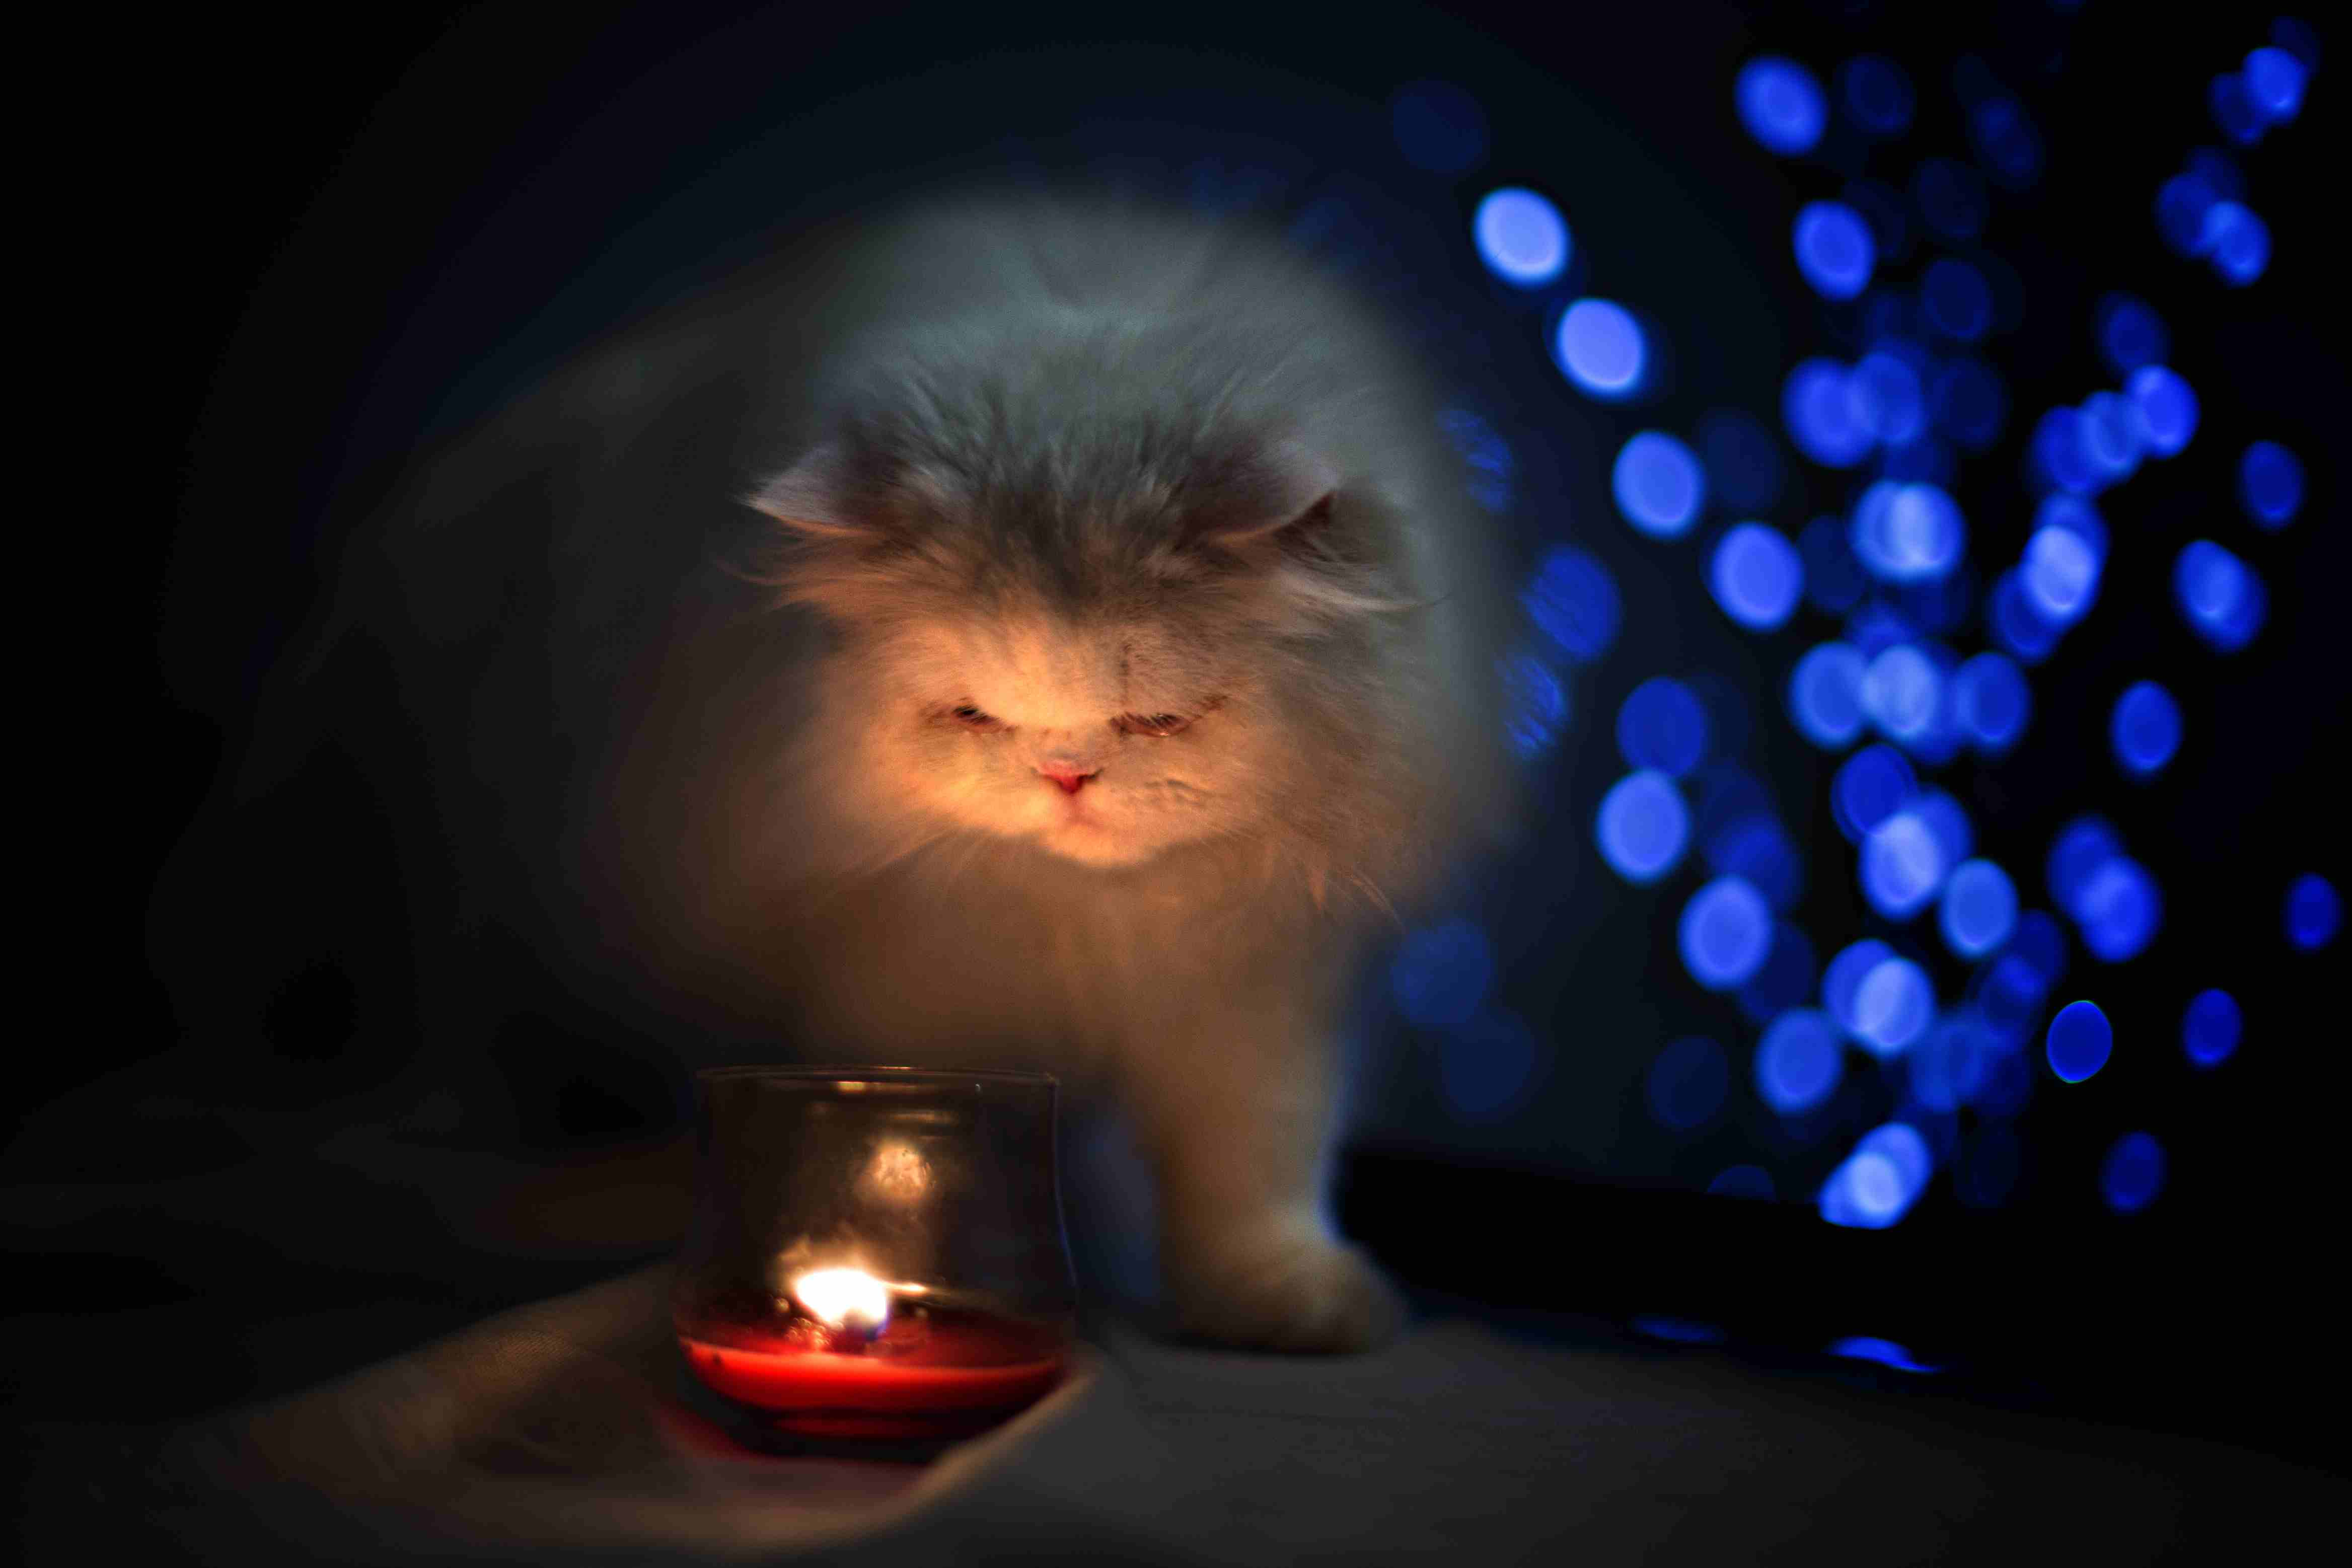 White persian cat facing a red candle with blue bo